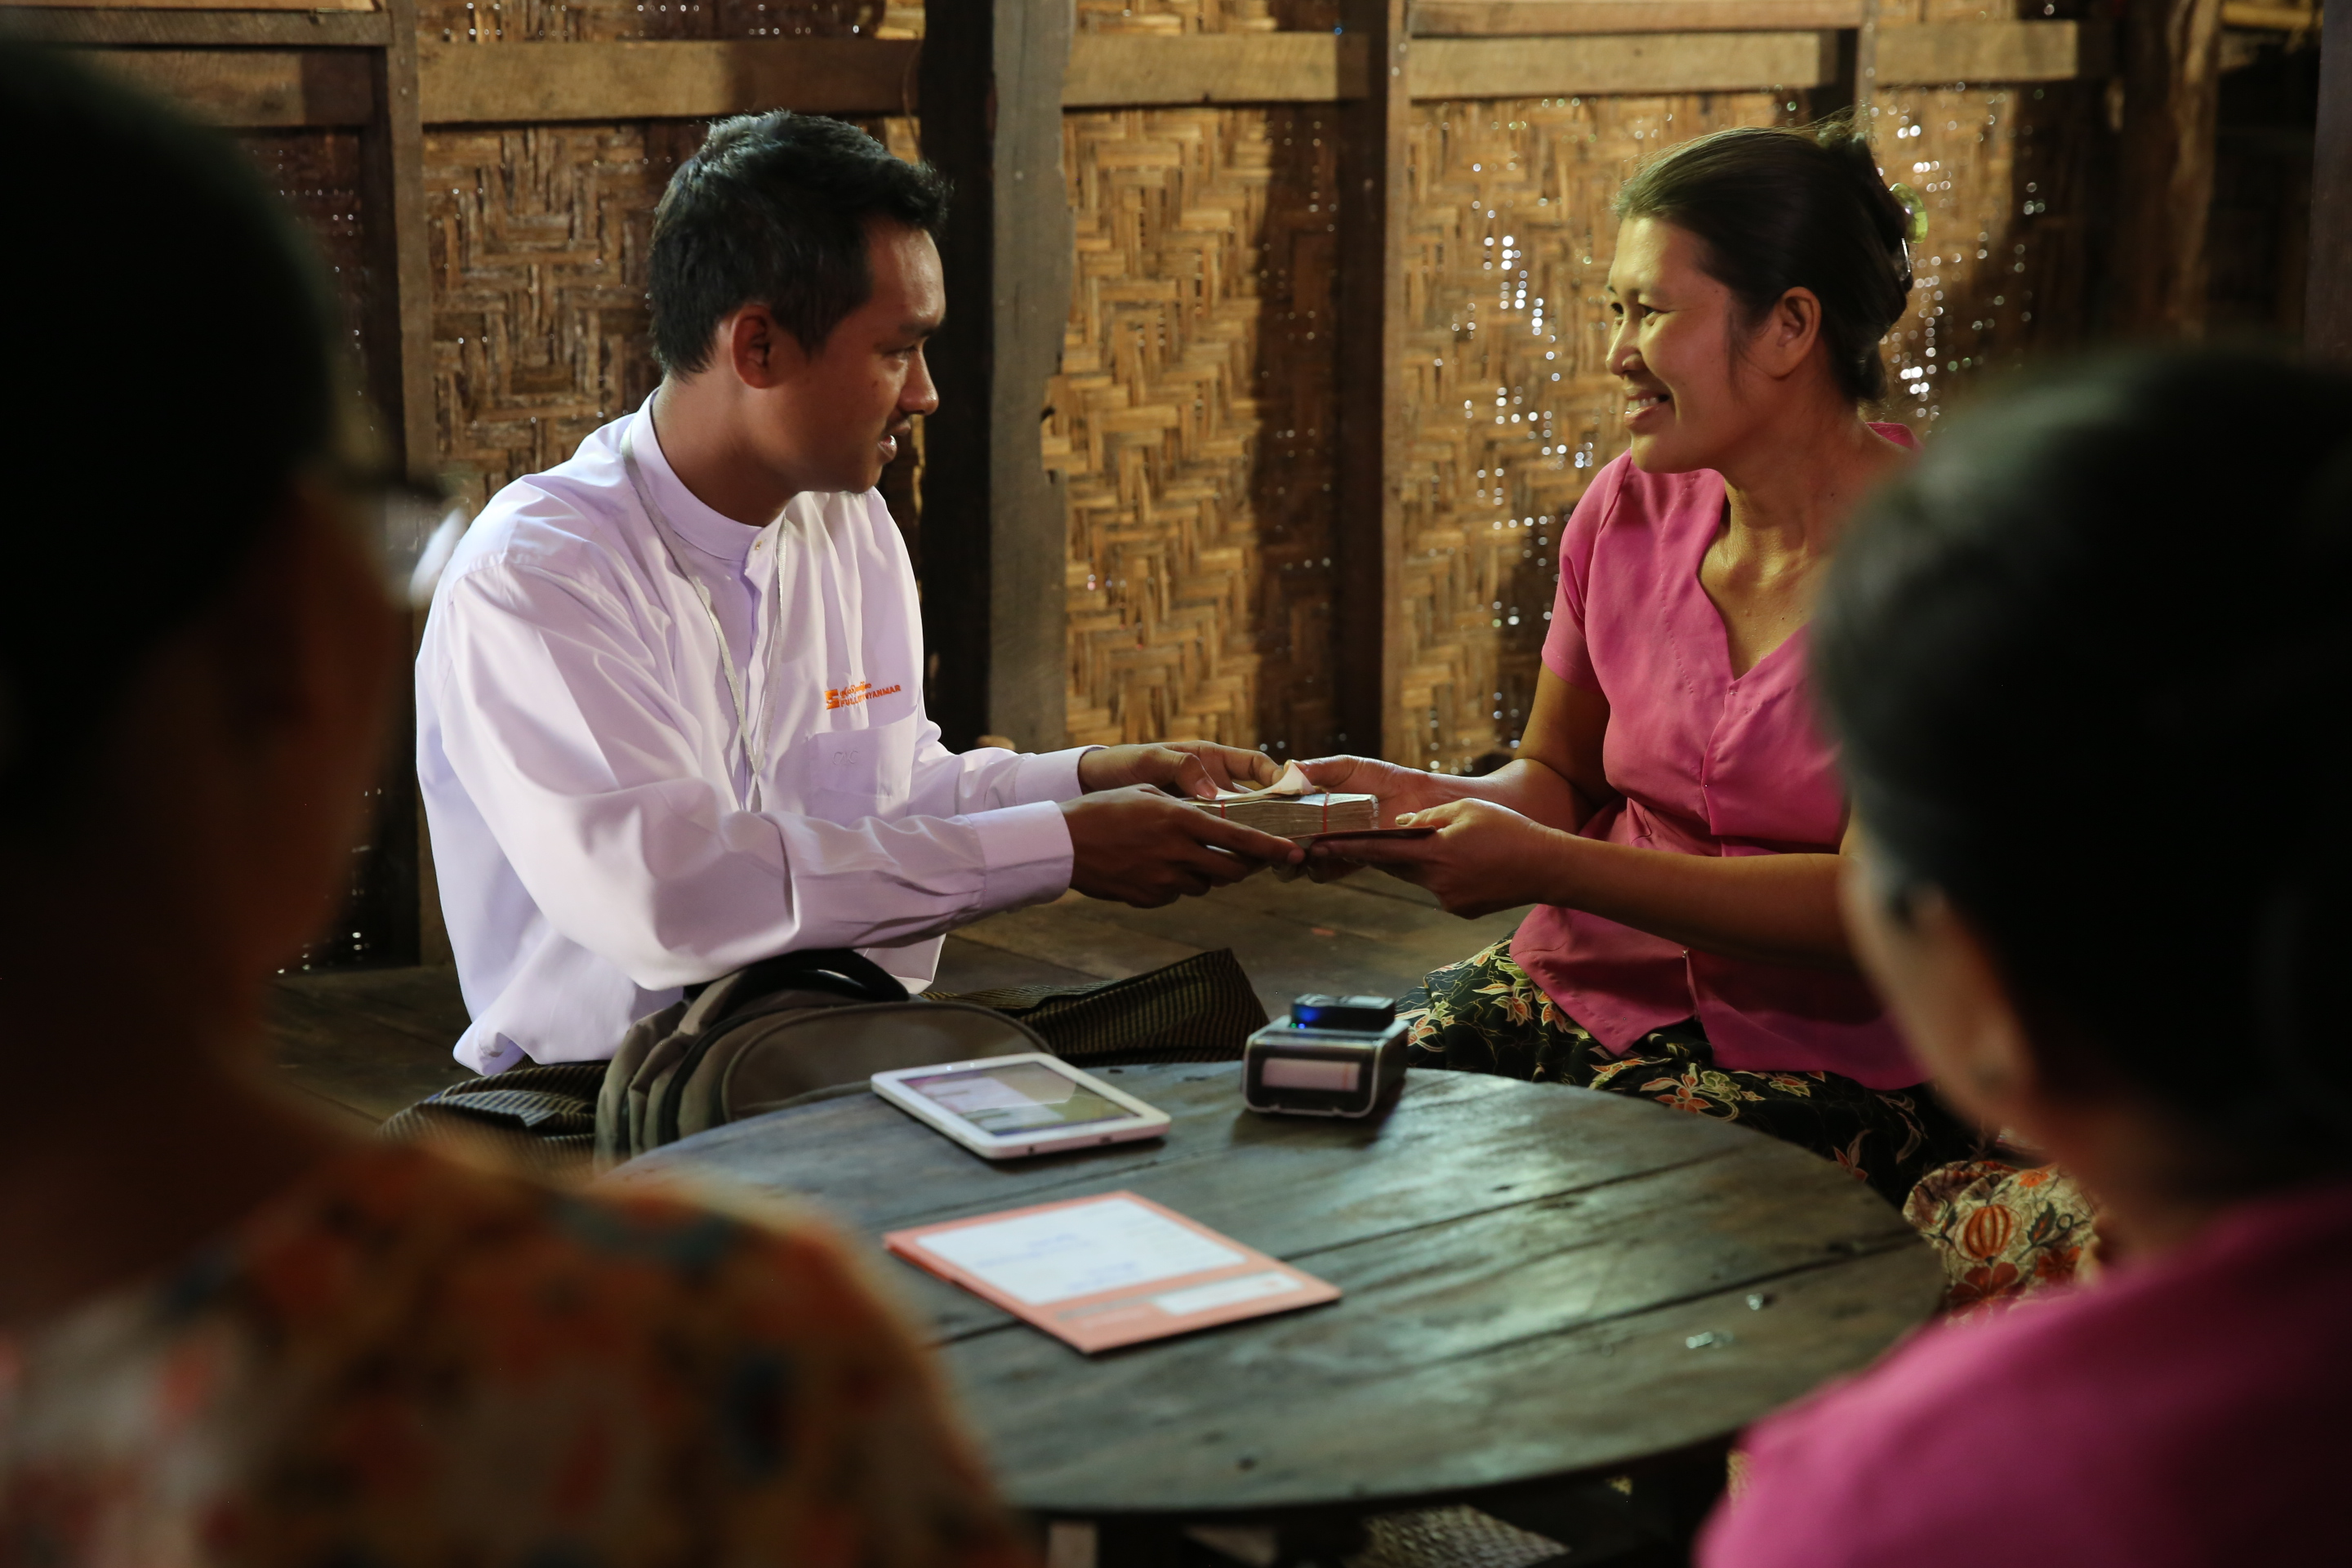 Fullerton Myanmar loan officer Min Thu, left, meets with Win Win Soe, who received a microfinance loan that helped her open a factory that makes noodle snacks.